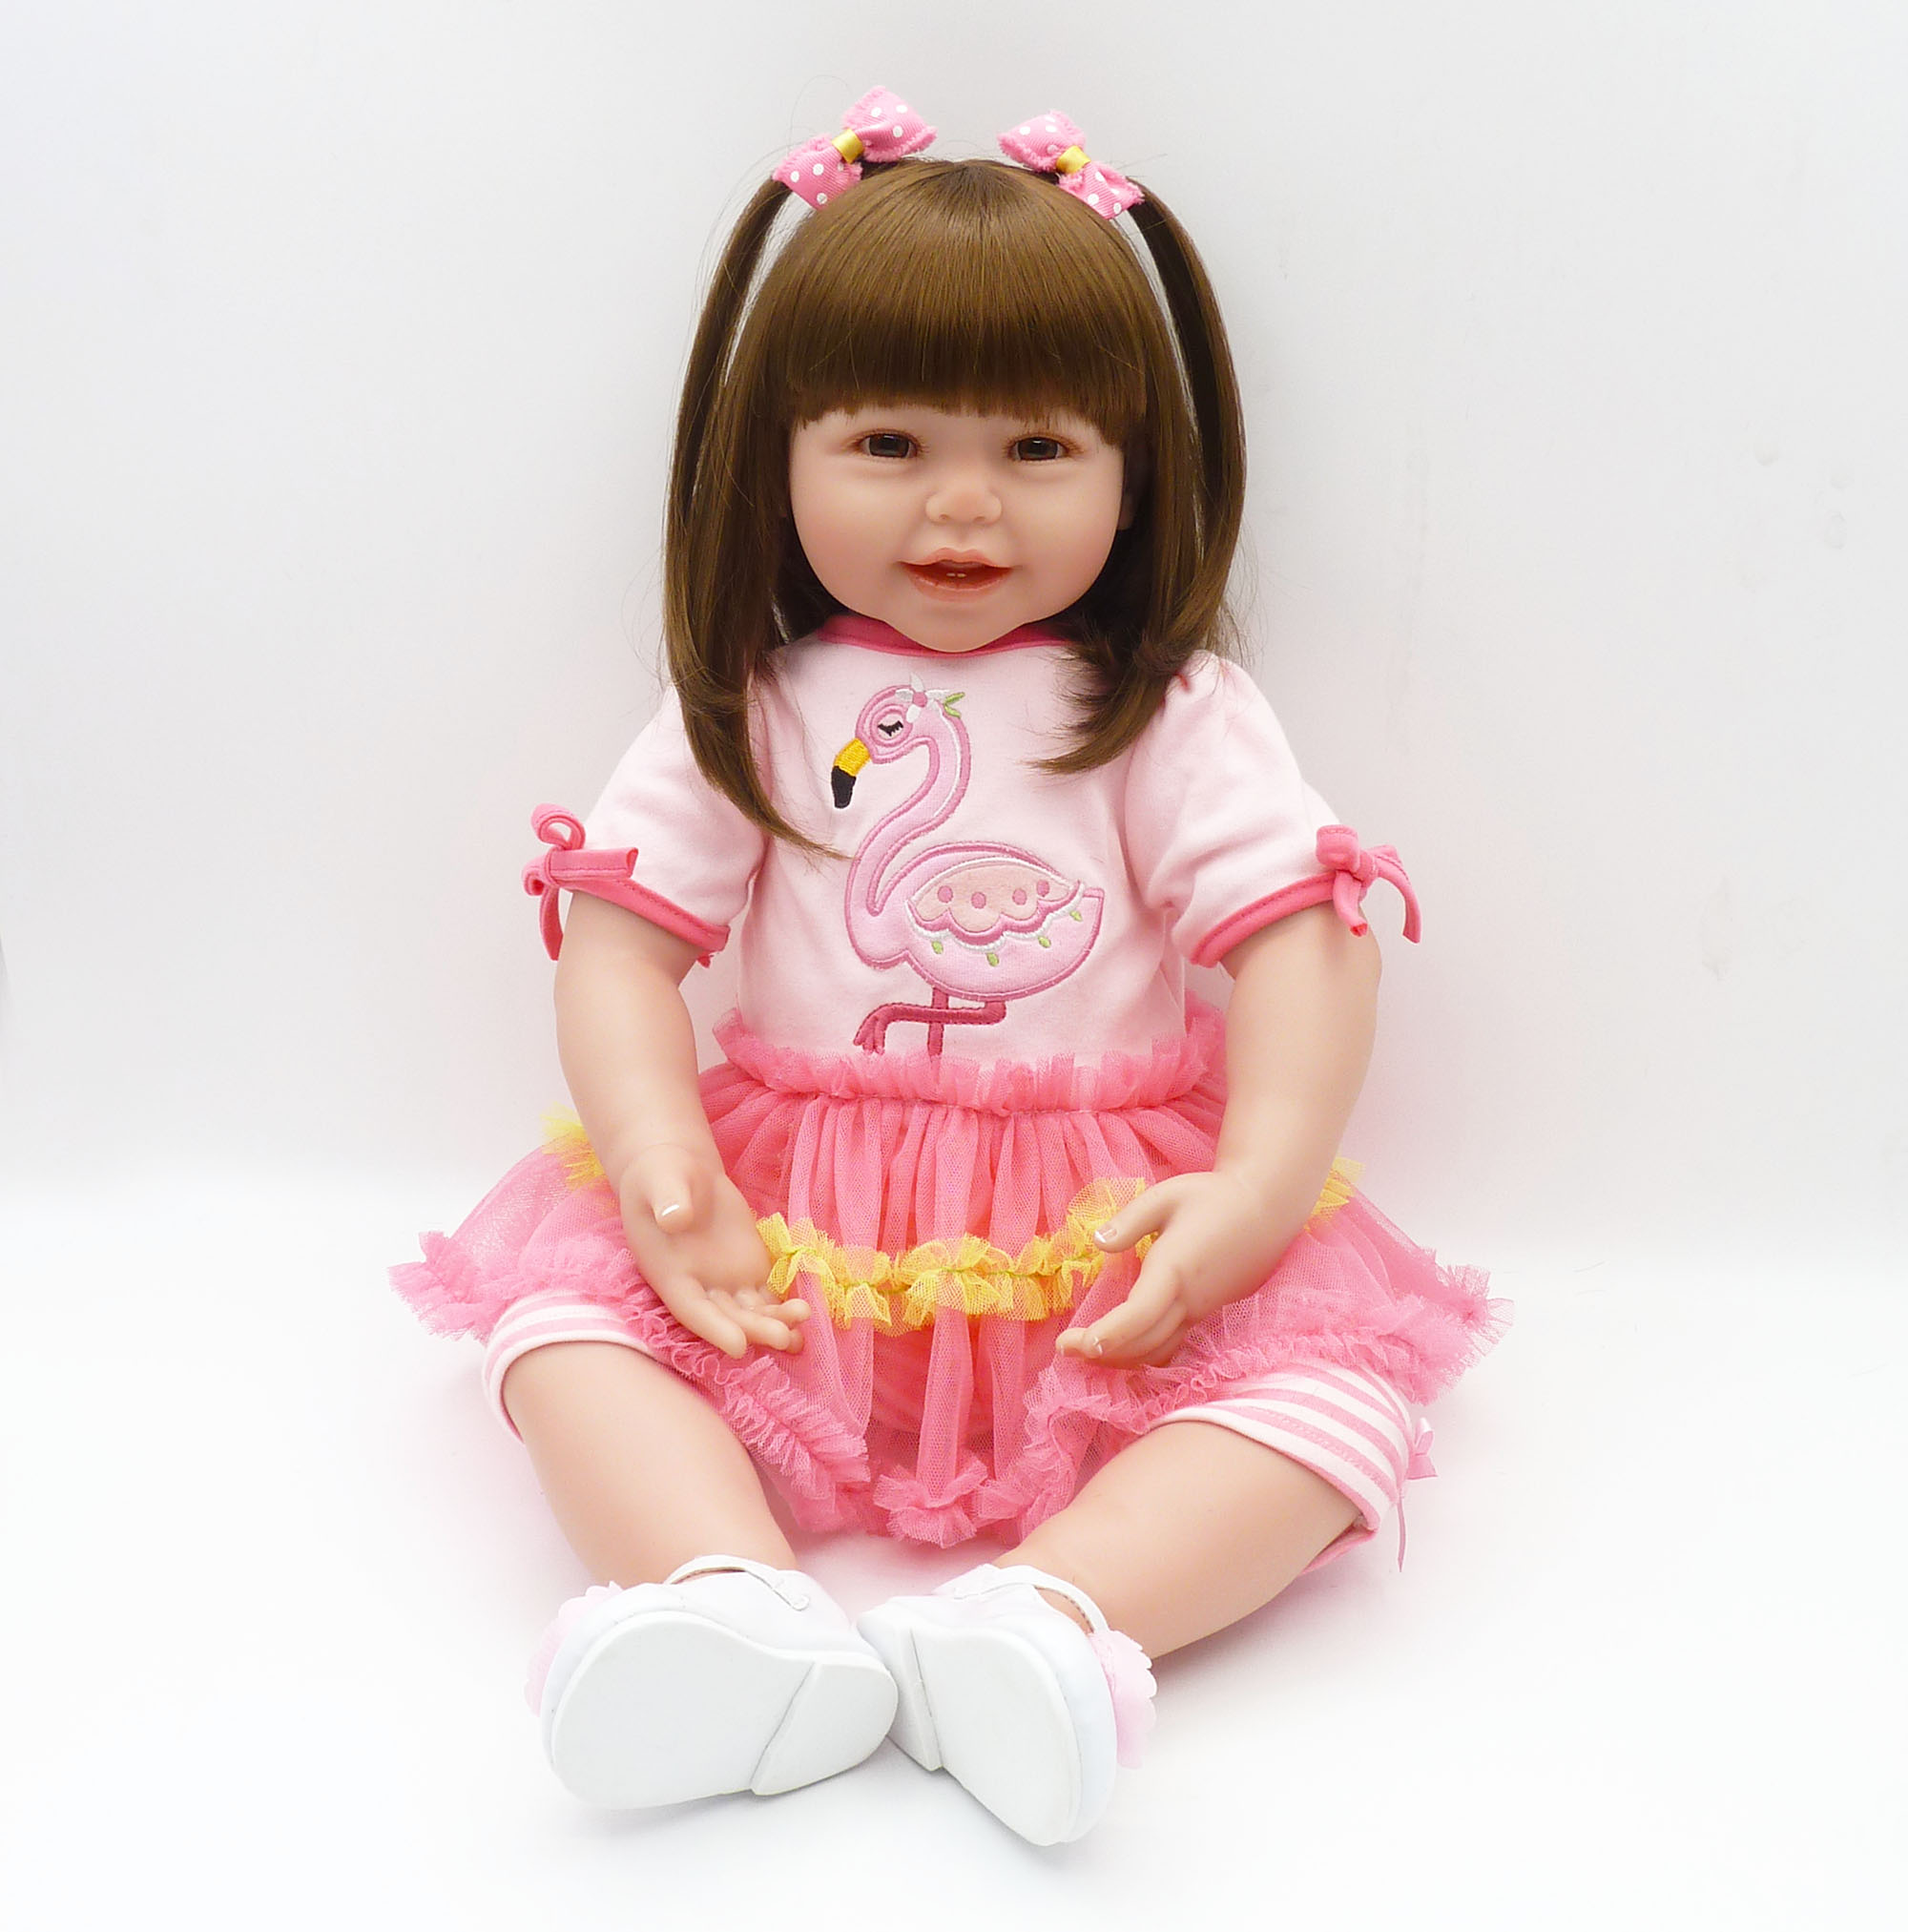 61cm Soft Cotton Body Dolls Silicone Reborn Baby Dolls Princess Bebe Dolls Brinquedo Menina Dolls Toy for Girls and Boys61cm Soft Cotton Body Dolls Silicone Reborn Baby Dolls Princess Bebe Dolls Brinquedo Menina Dolls Toy for Girls and Boys